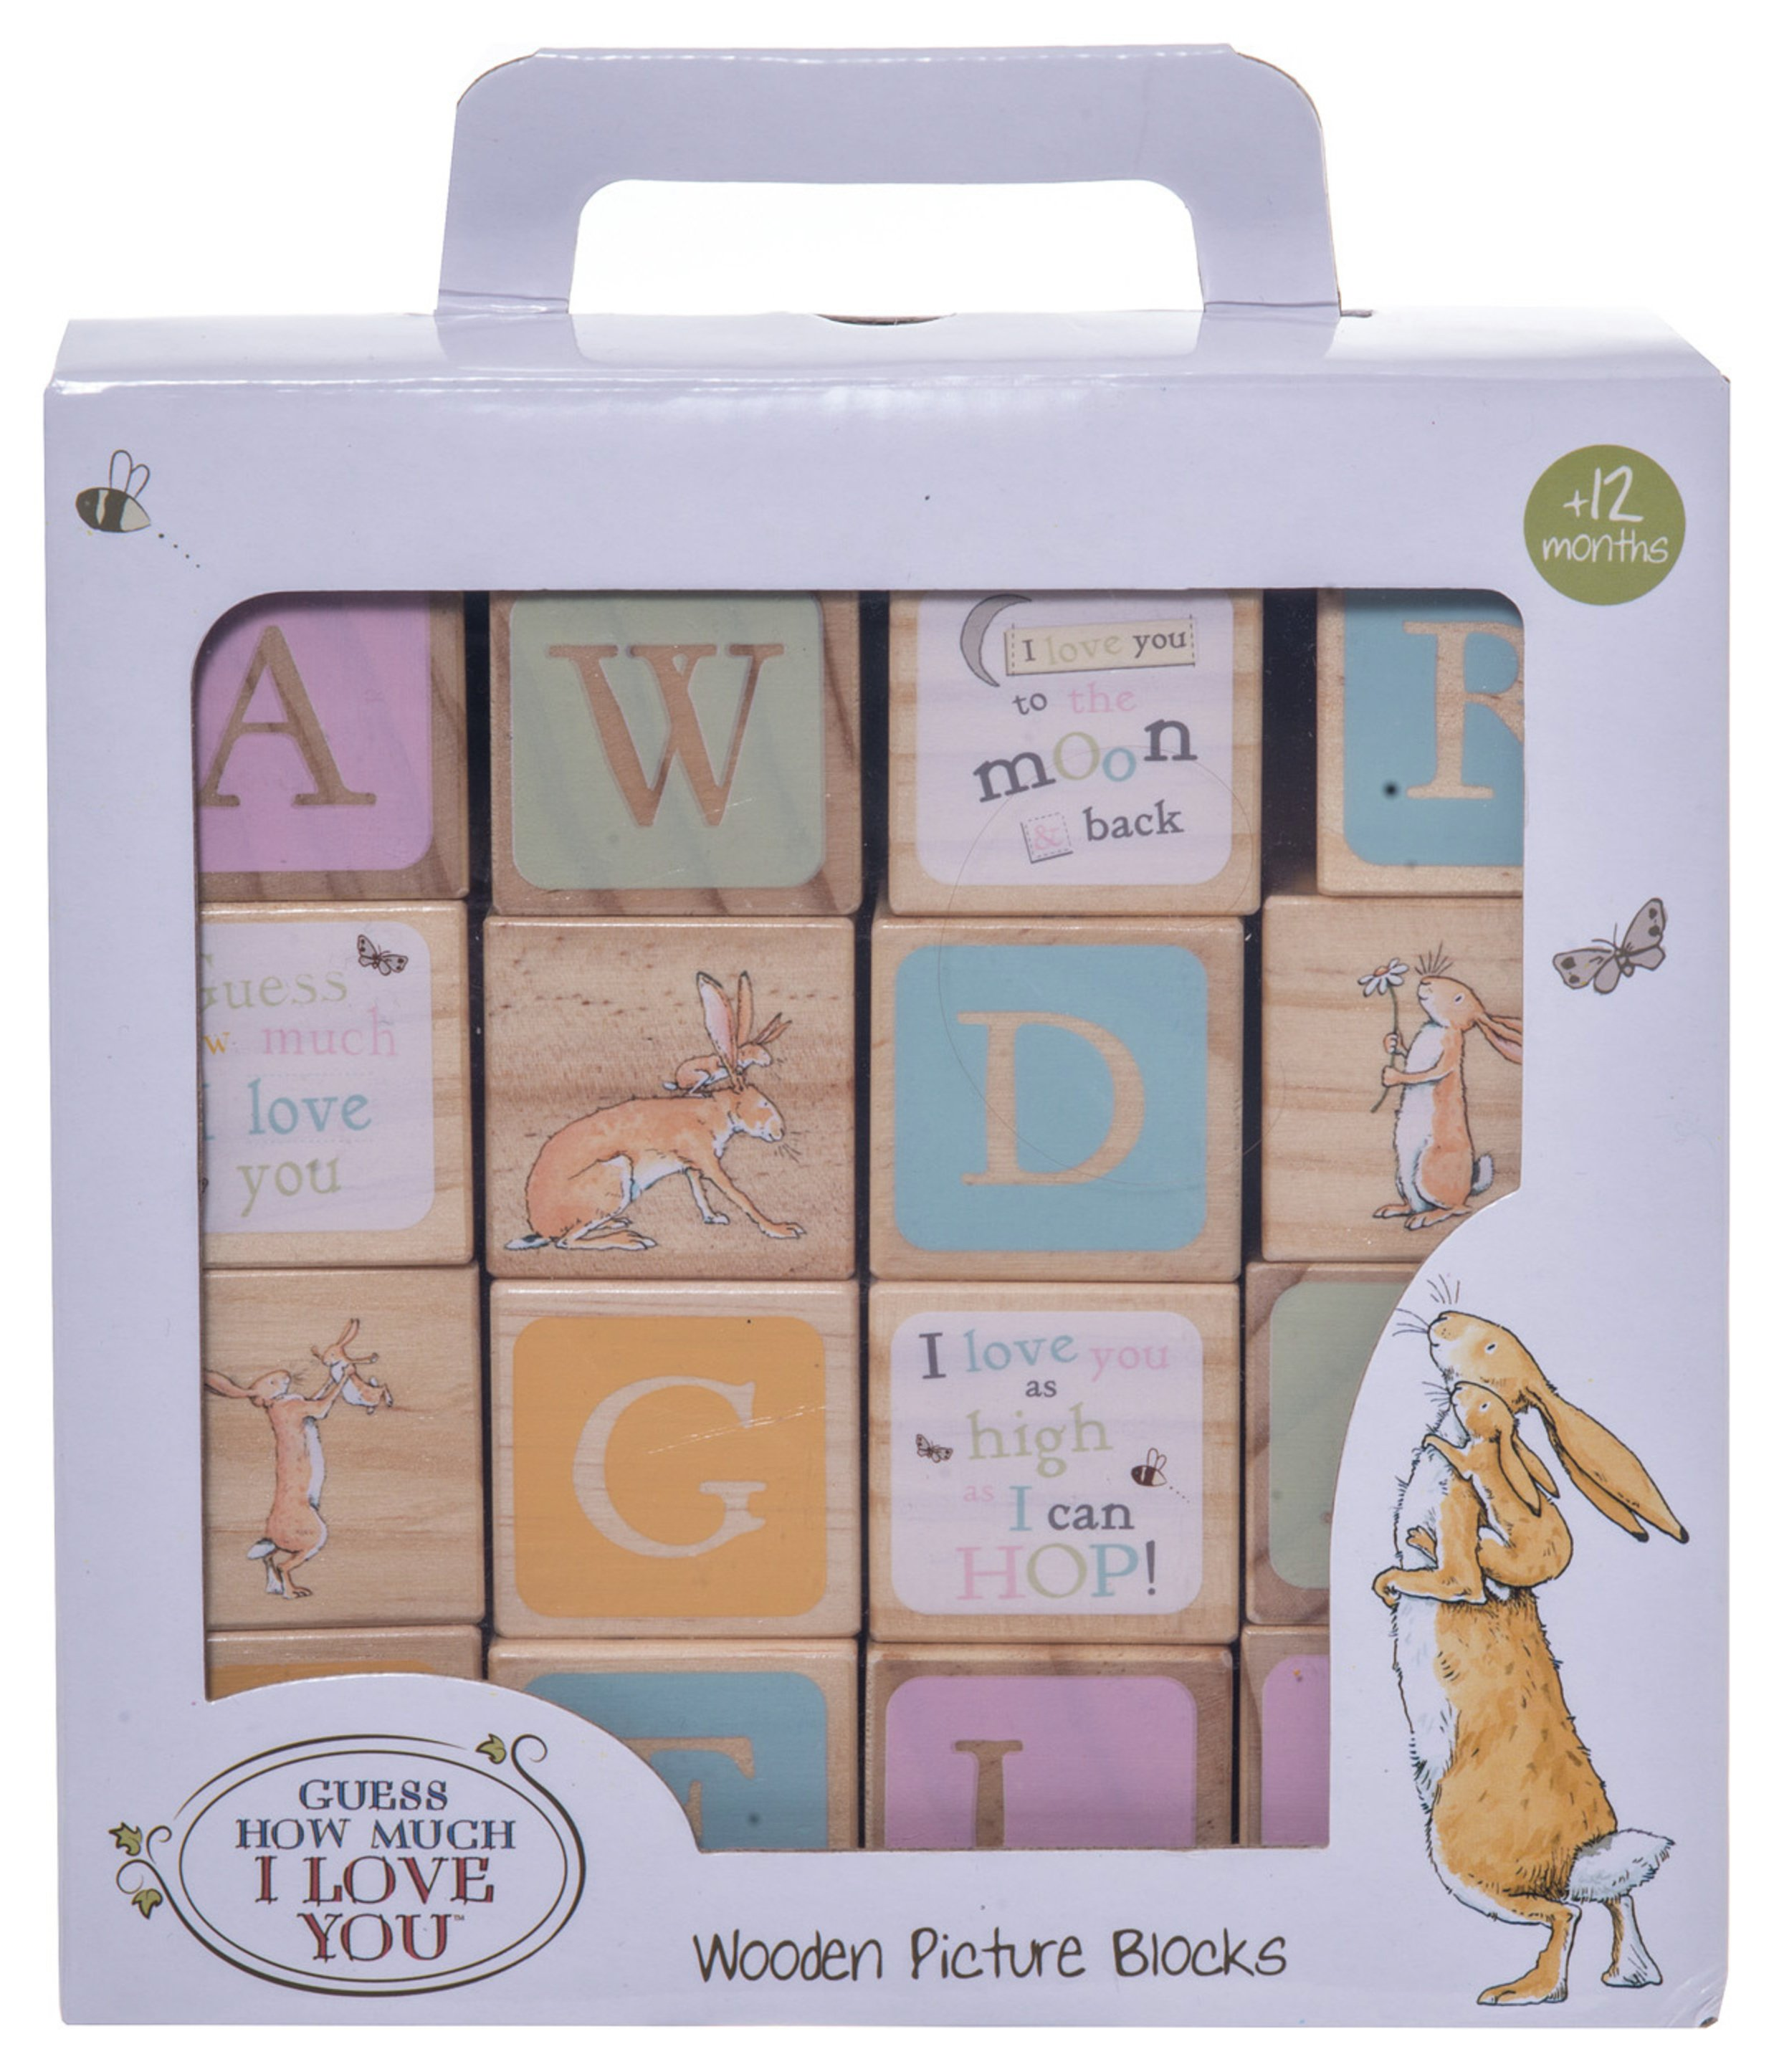 Image of Guess How Much I Love You Wooden Picture Blocks.